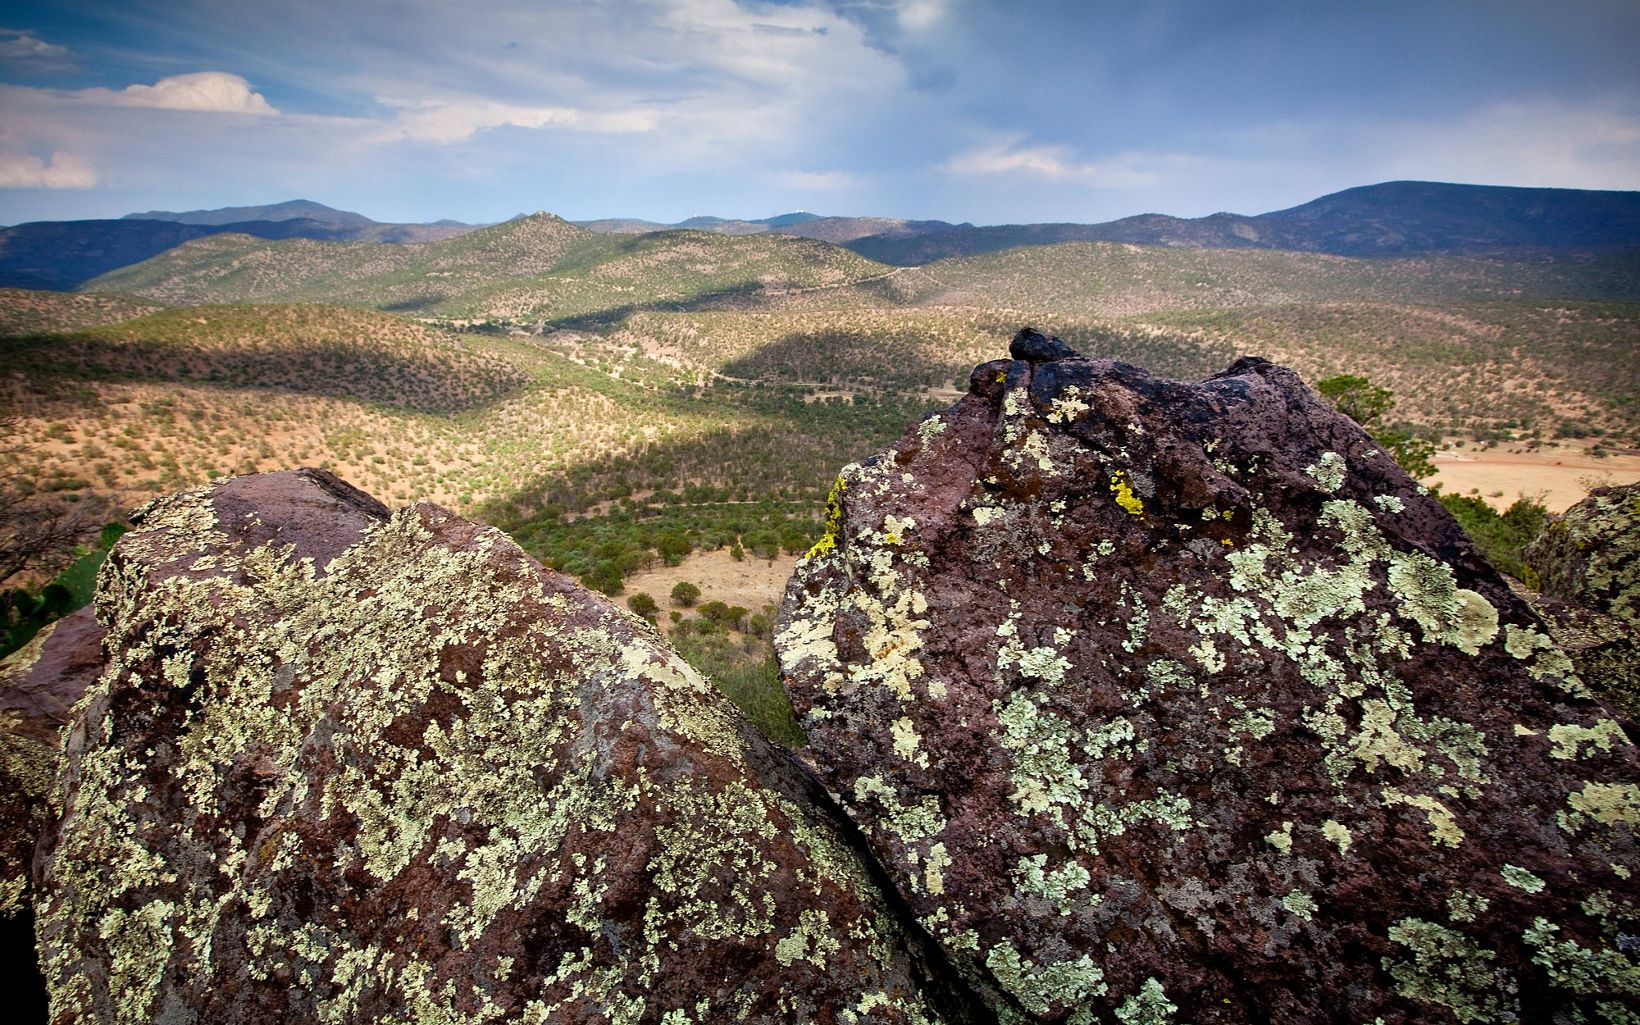 Lichen-covered rocks in the foreground and a view across broad, low hills and mountains.